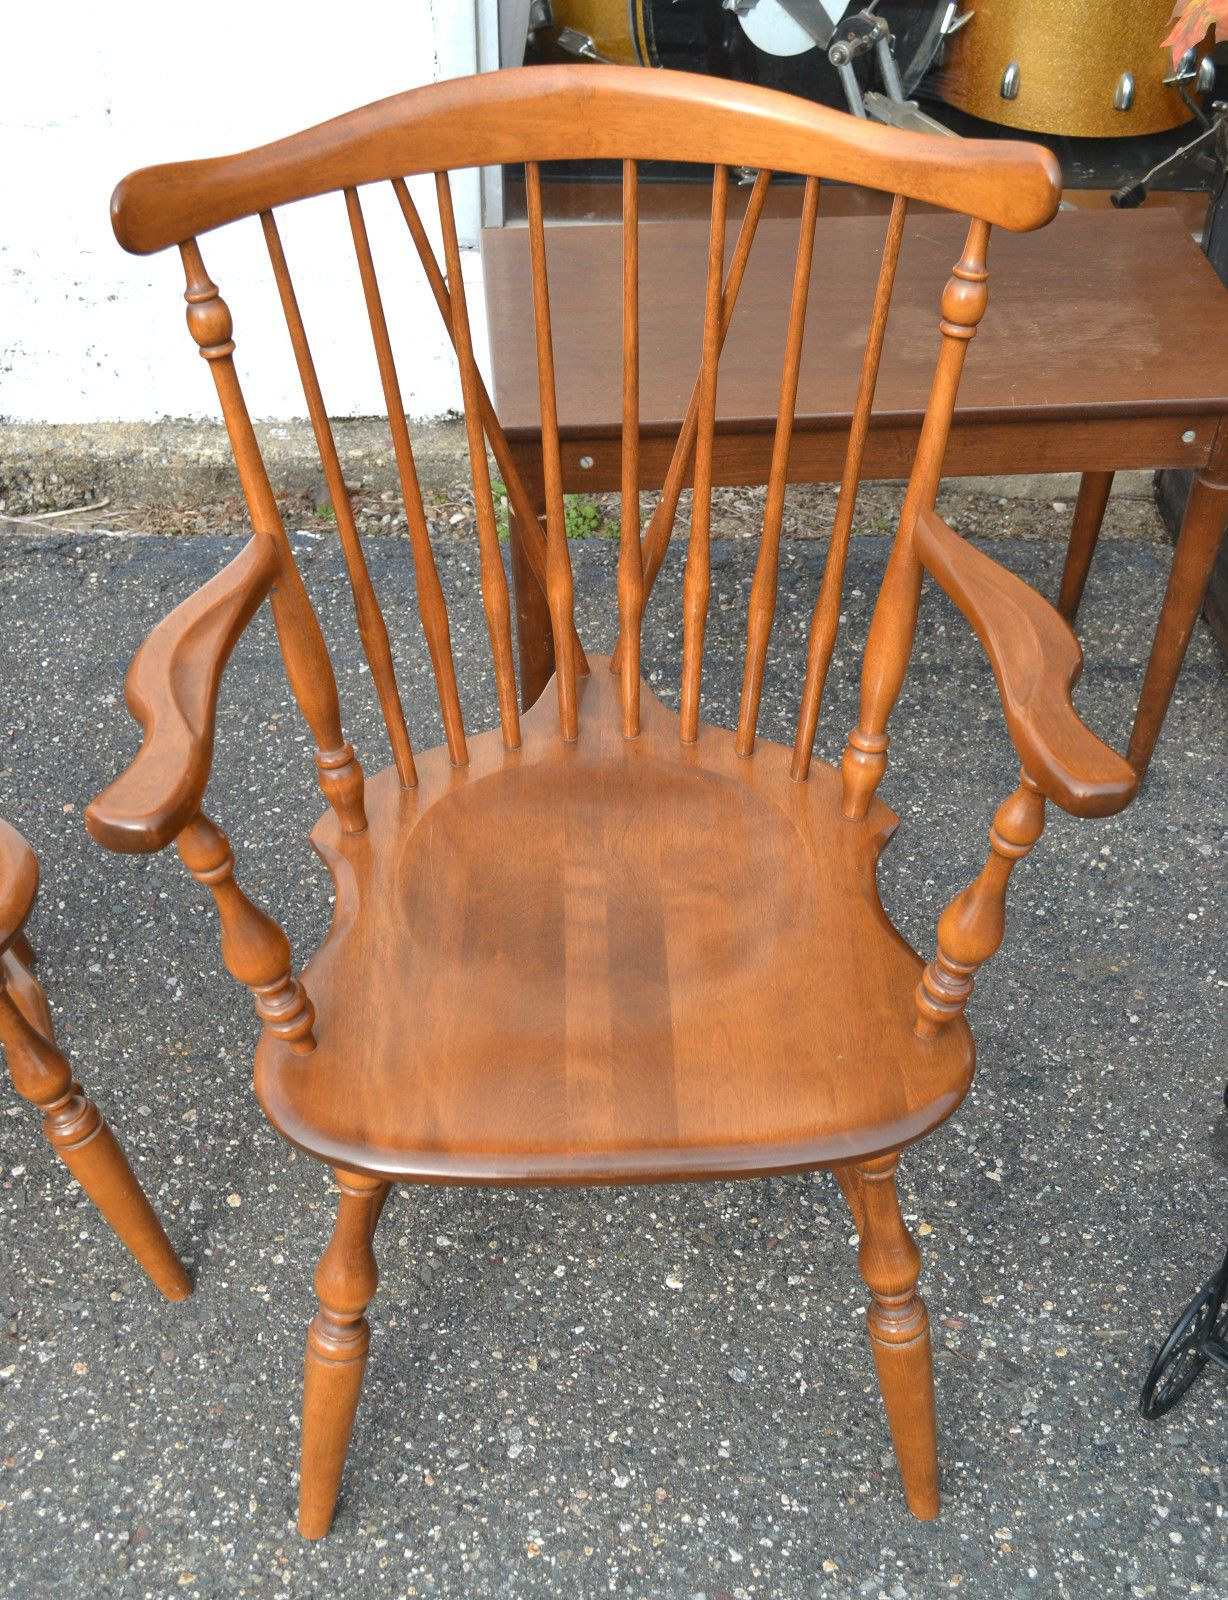 Ethan allen early american birch & maple diningroom style arm